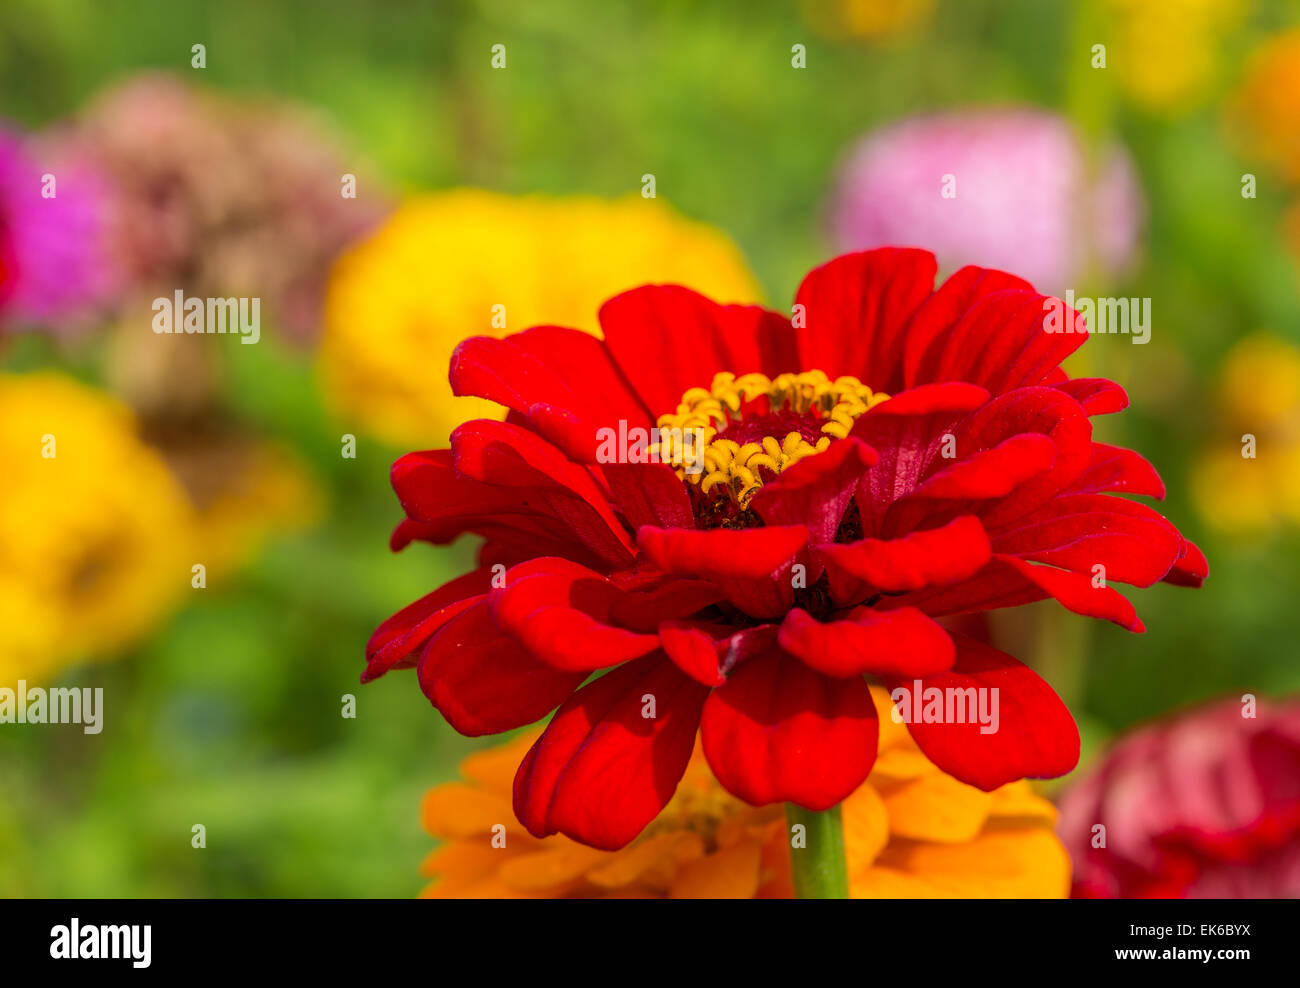 Vibrant zinnia flowers in the home garden. - Stock Image